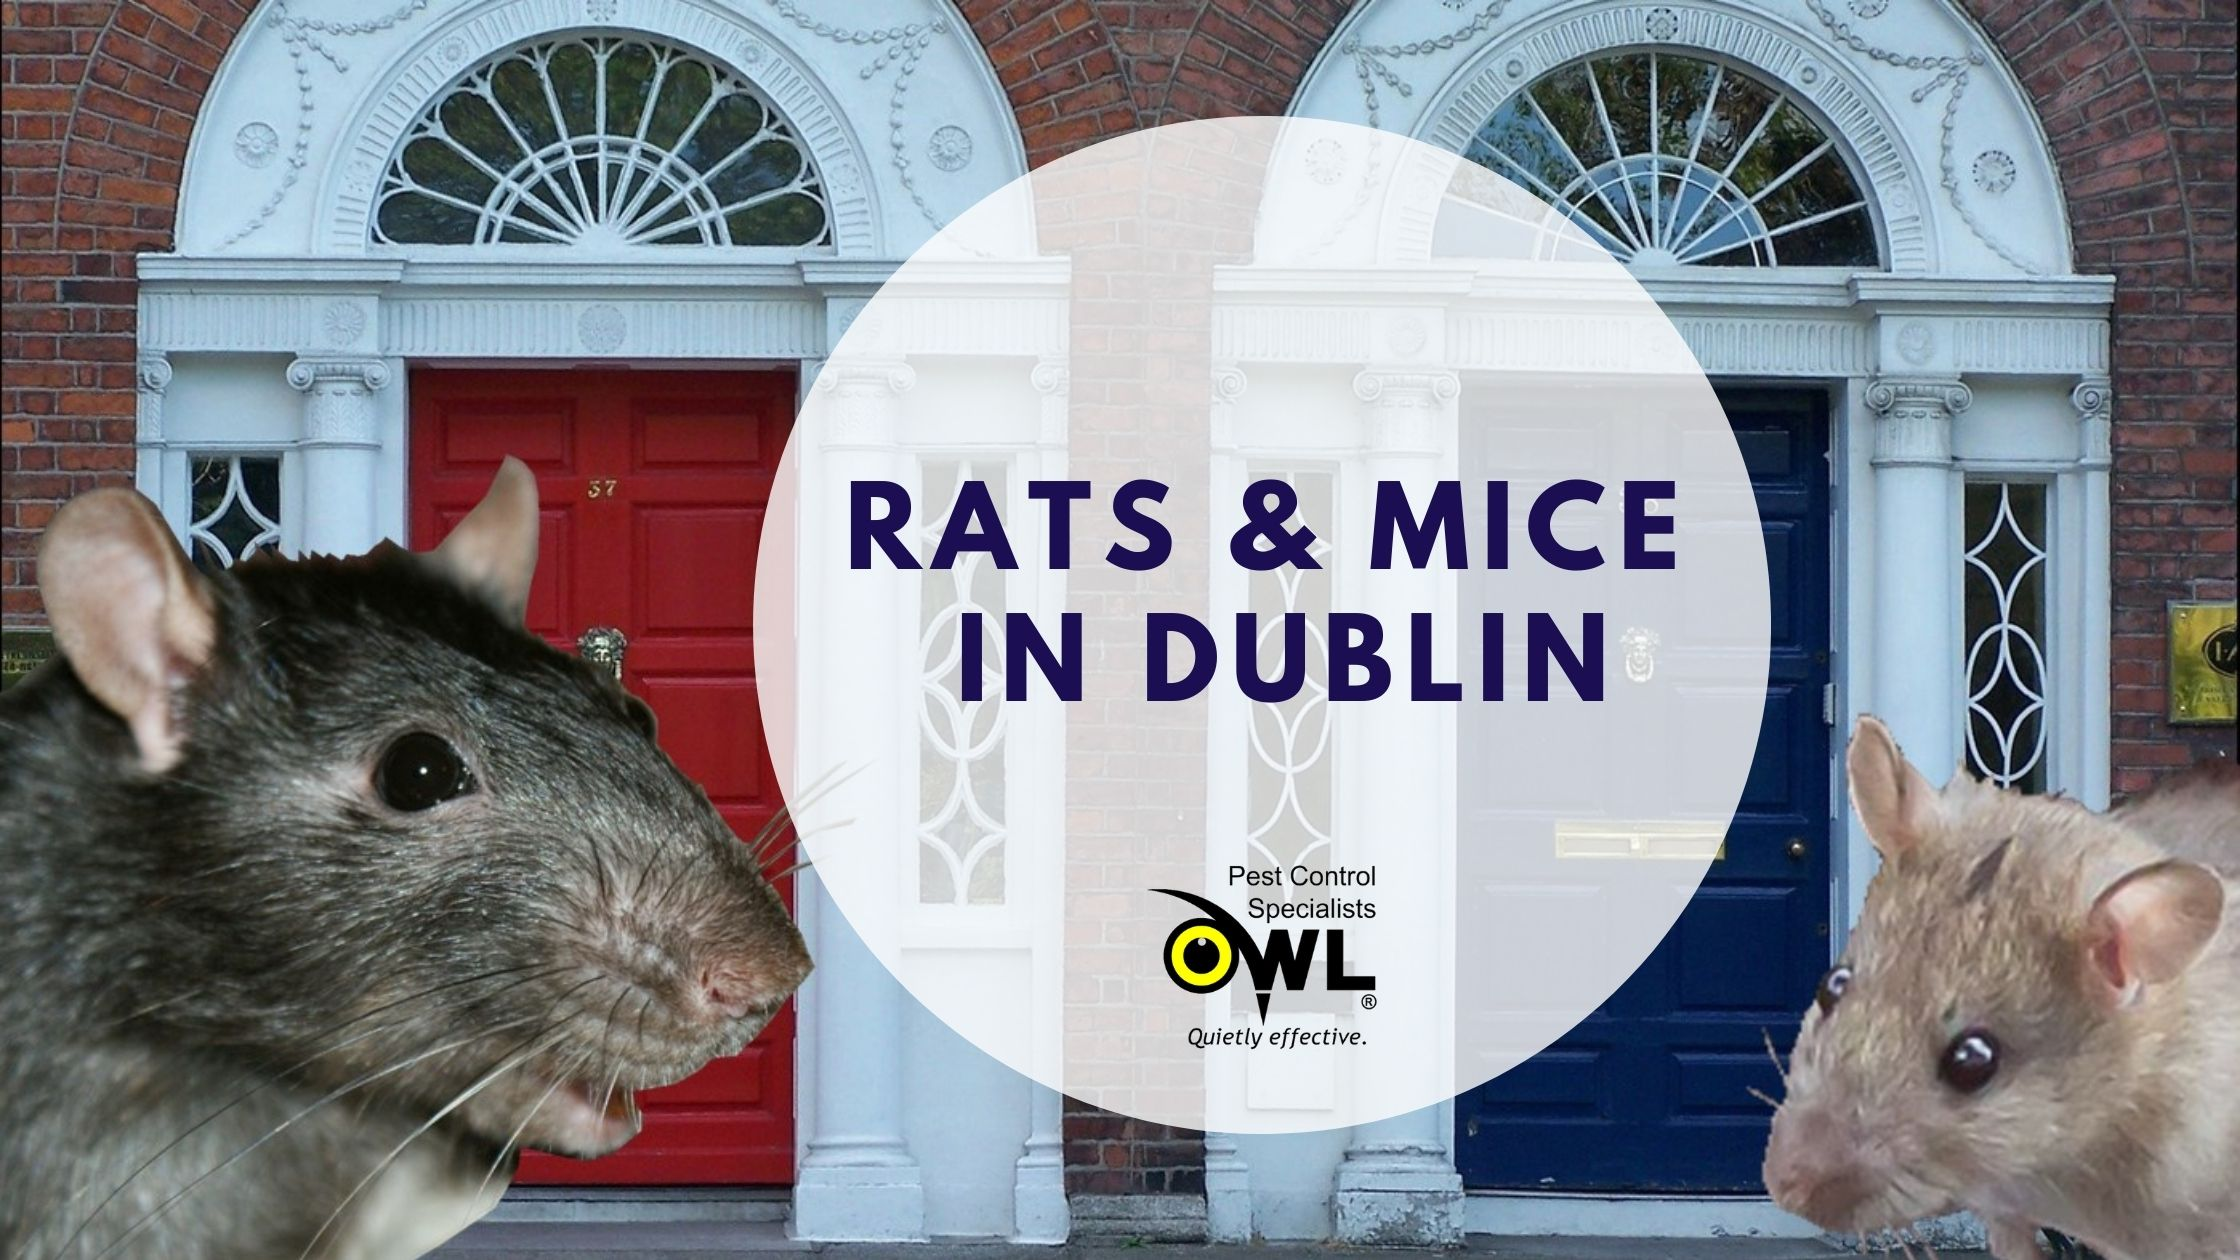 Rats & Mice in Dublin - Owl pest control